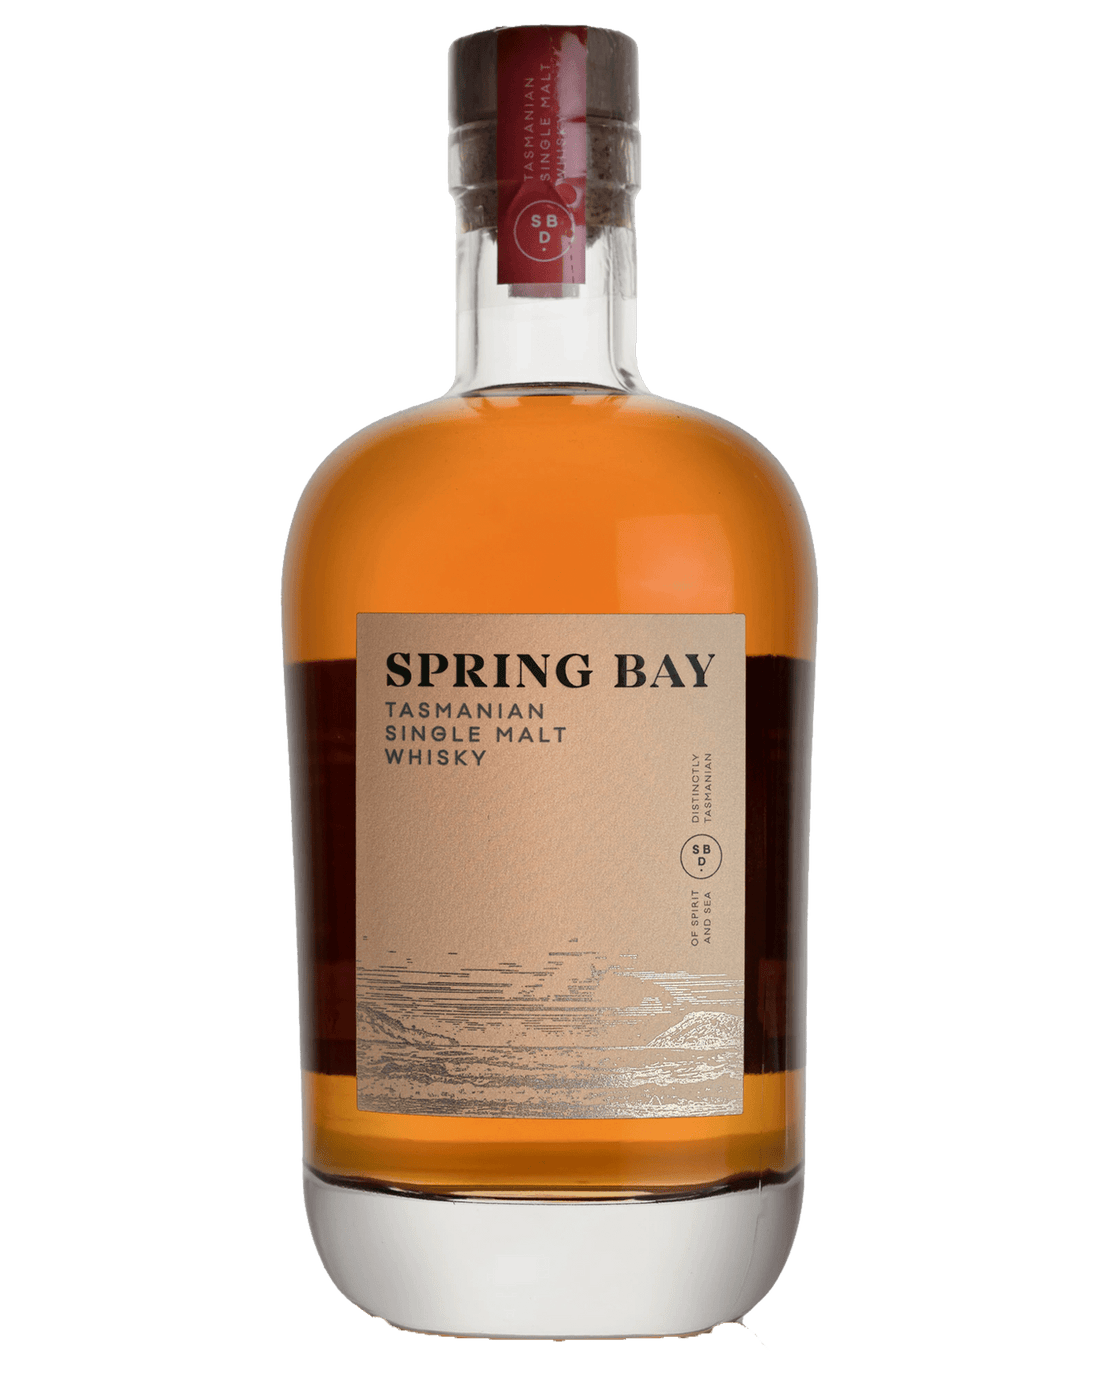 Spring Bay Sherry Cask Single Malt Australian Whisky (700ml)